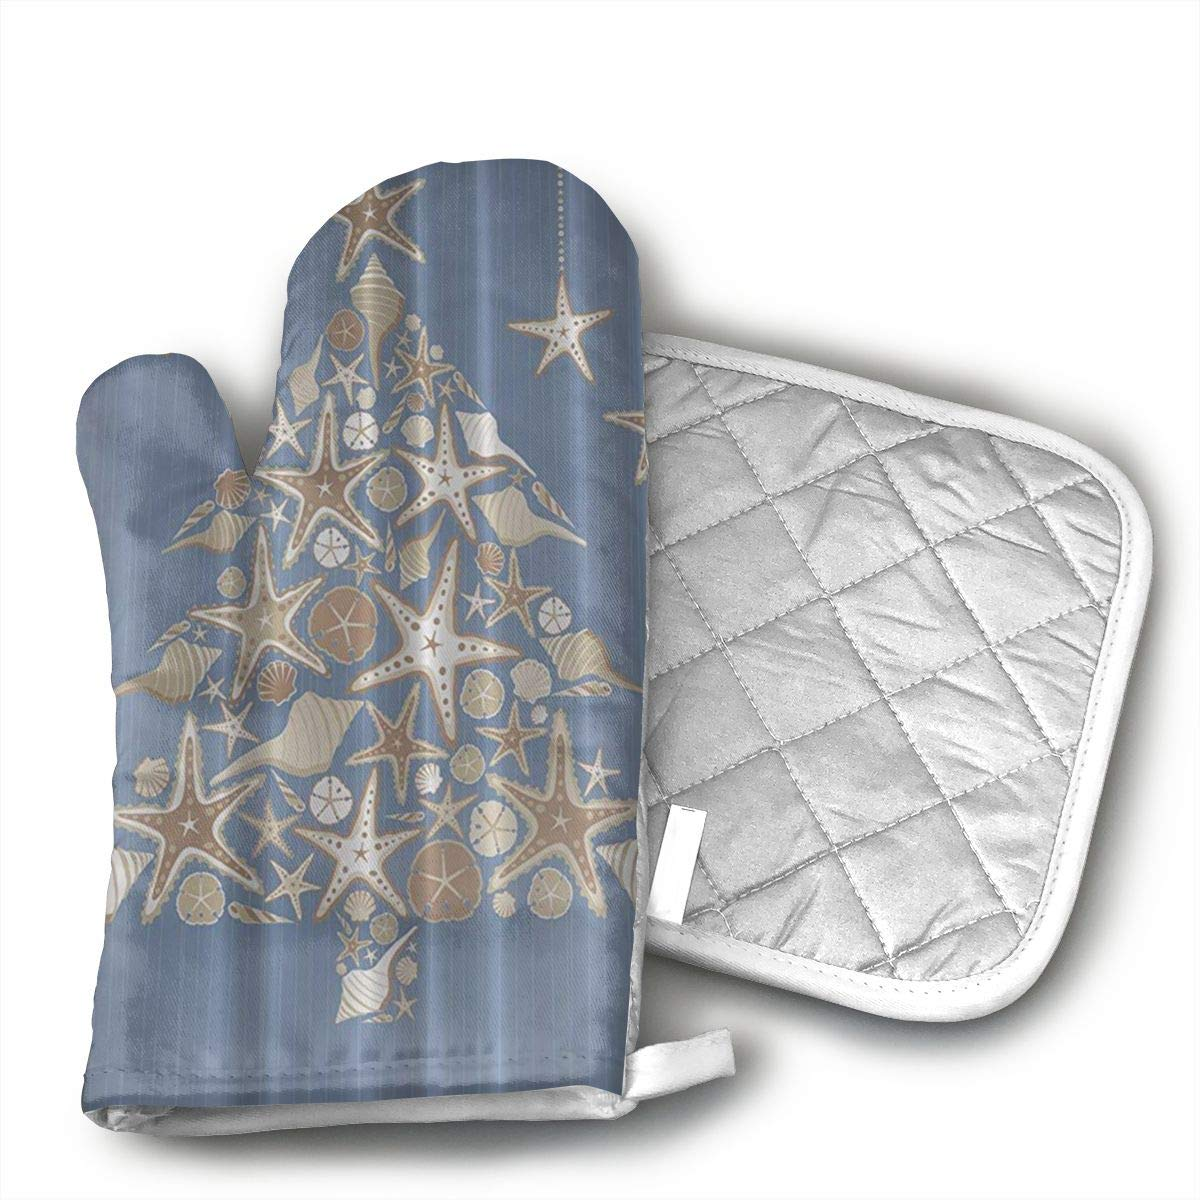 UYRHFS Seashell Beach Christmas Oven Mitts and Pot Holder Kitchen Set with, Heat Resistant, Oven Gloves and Pot Holders 2pcs Set for BBQ Cooking Baking